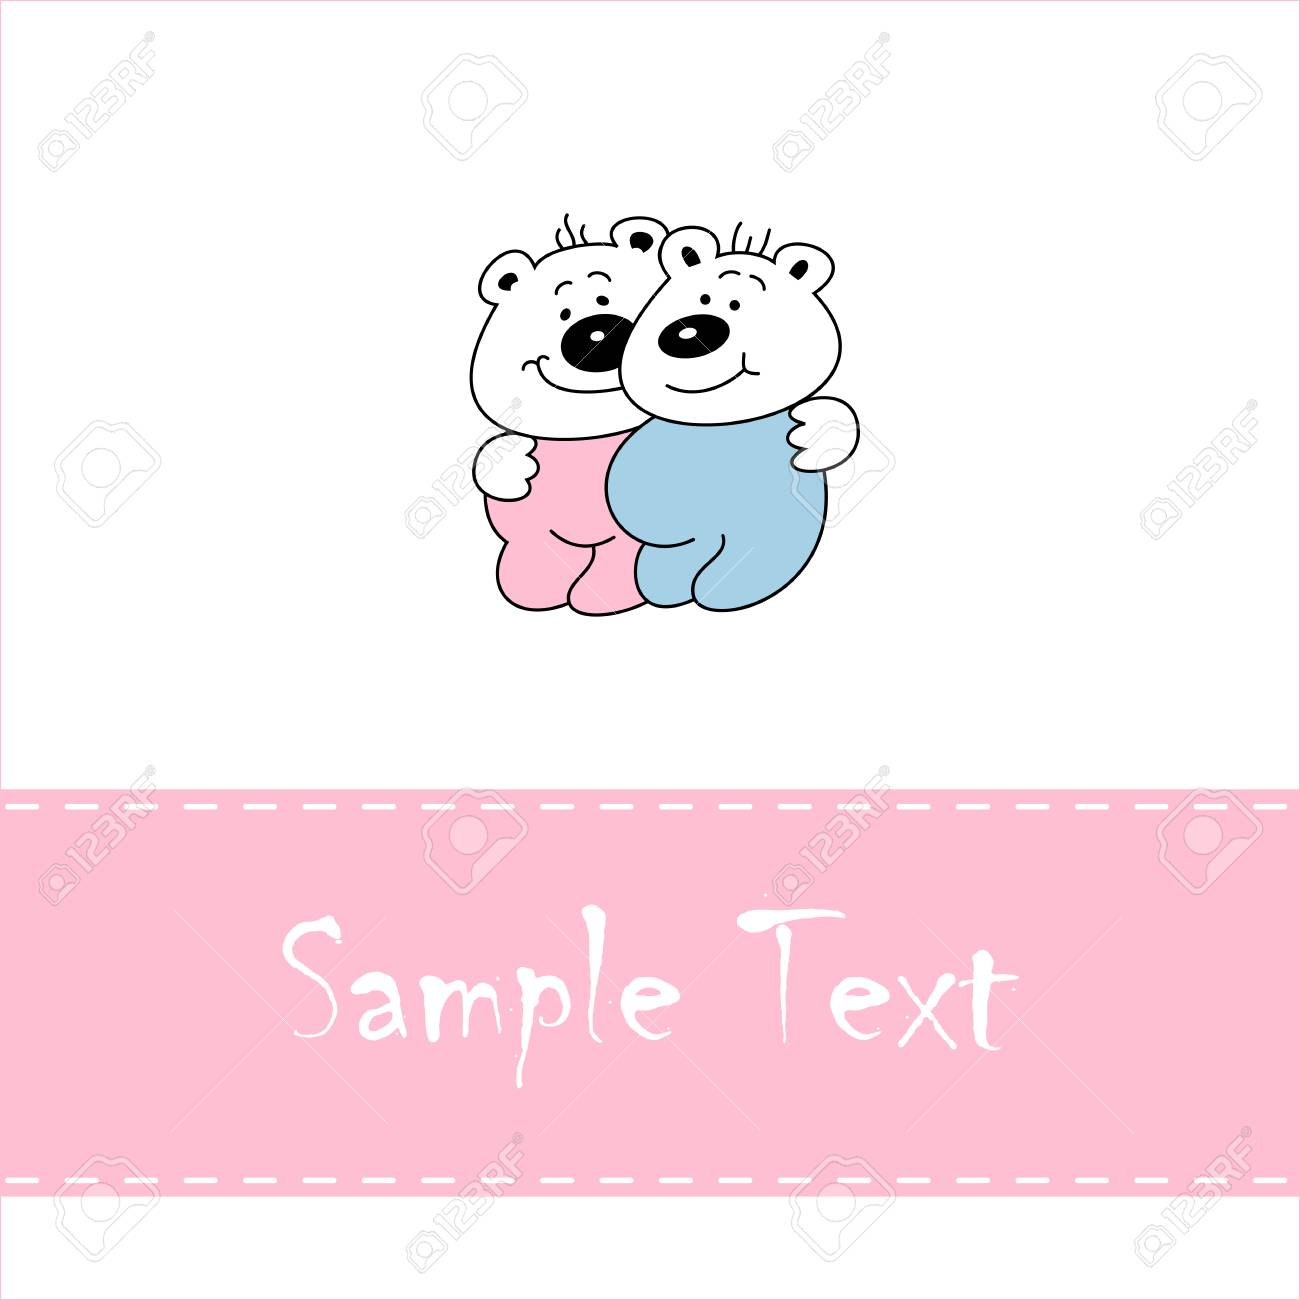 Greeting card with smiling baby bears, vector illustration Stock Vector - 5694565